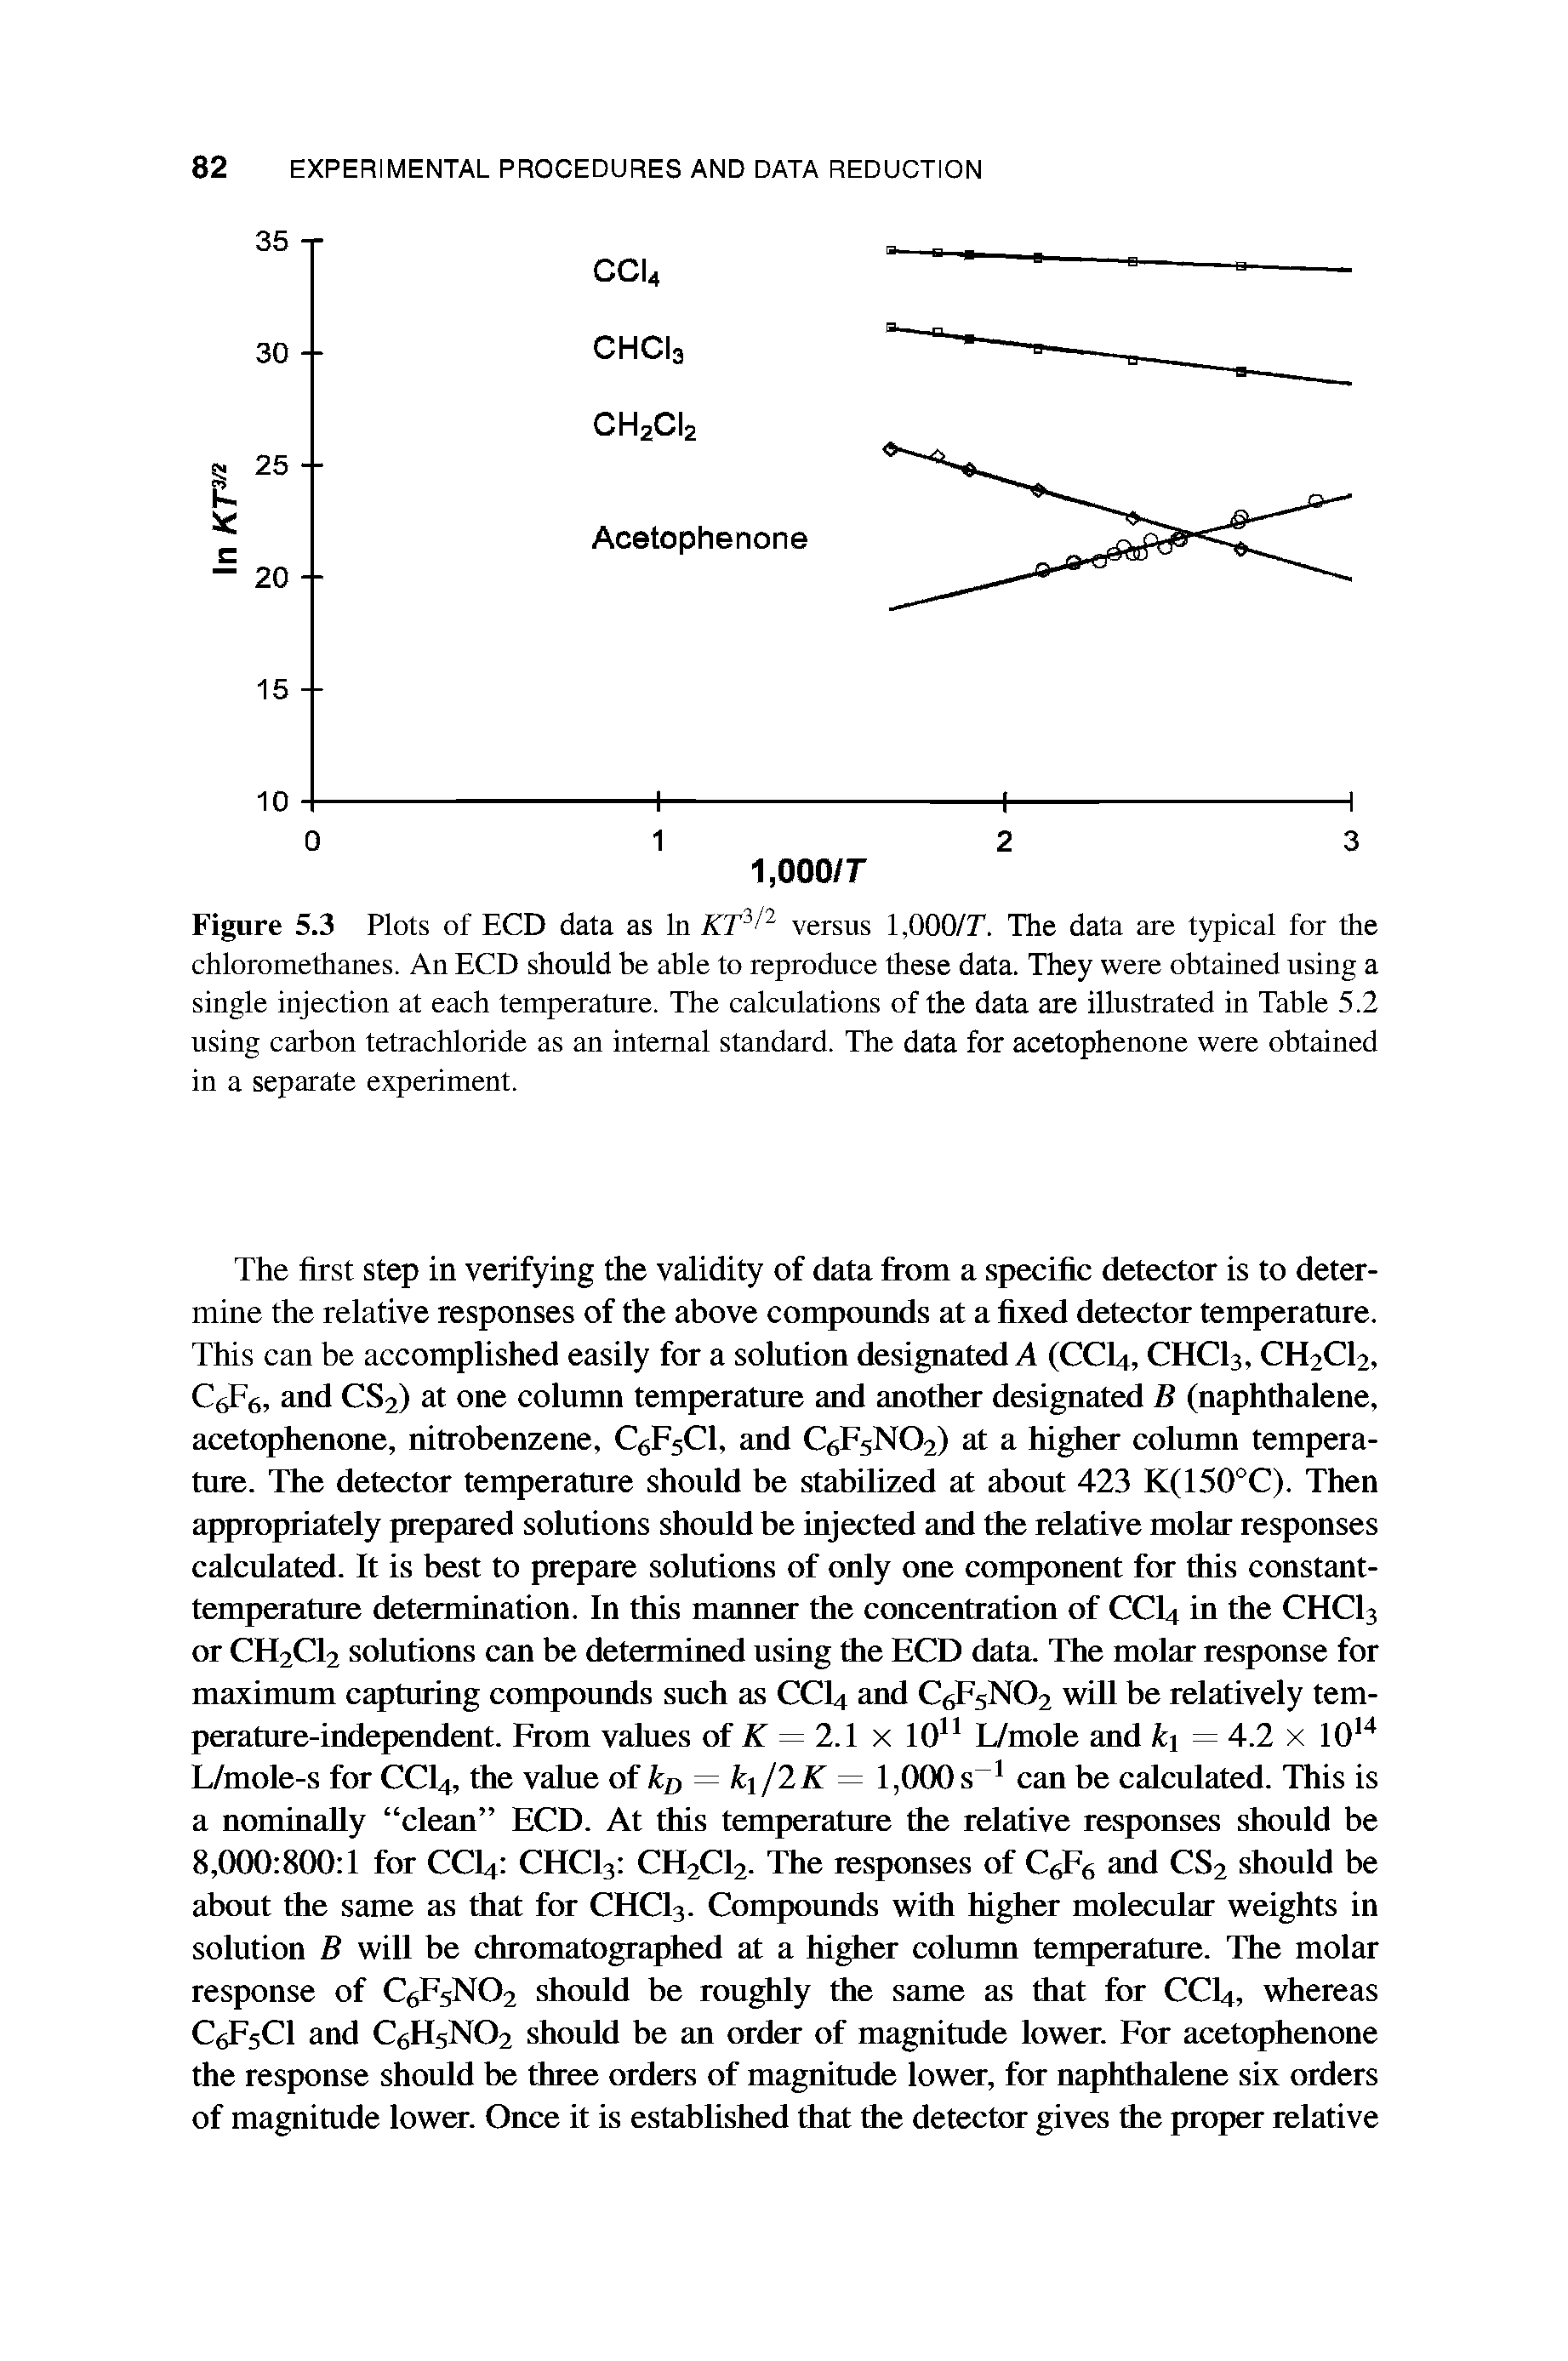 "Figure 5.3 Plots of ECD data as In KT3/2 versus TOOO/T. The data are typical for the chloromethanes. An ECD should be able to reproduce these data. They were obtained using a single injection at each temperature. The calculations of the data are illustrated in Table 5.2 using <a href=""/info/carbon_tetrachloride"">carbon tetrachloride</a> as an <a href=""/info/internal_standards"">internal standard</a>. The data for acetophenone were obtained in a separate experiment."